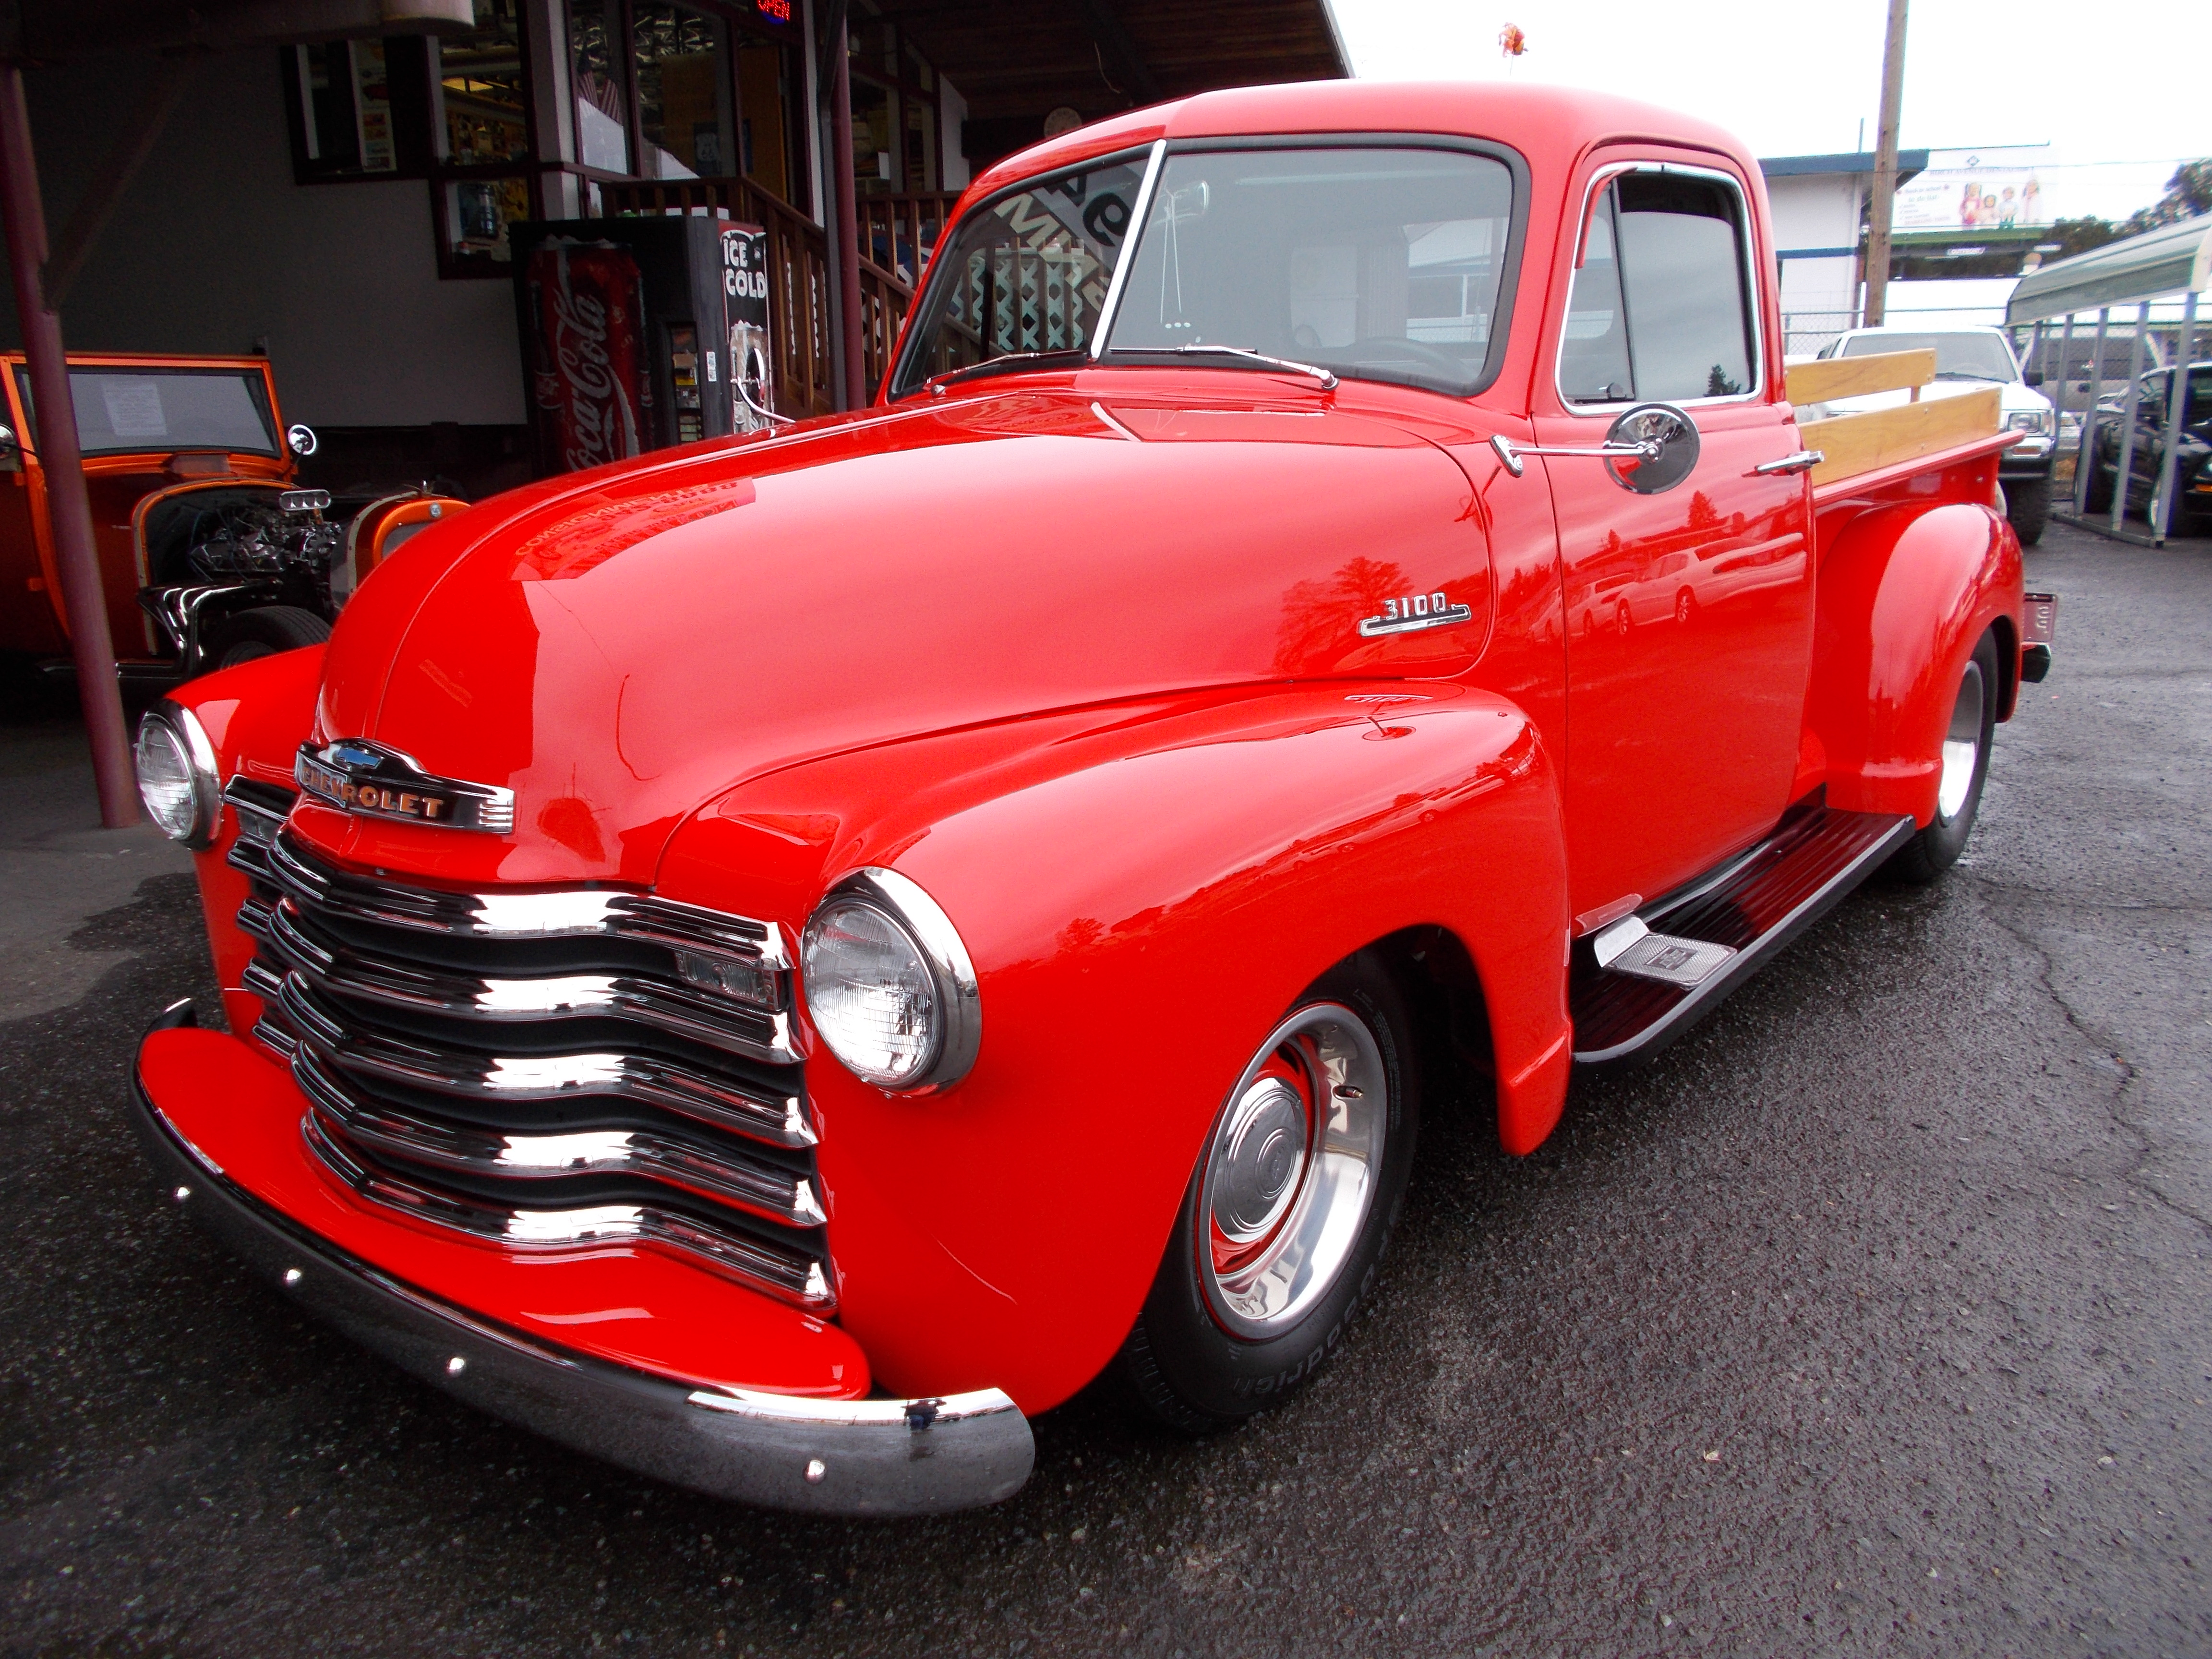 Hamilton Auto Sales 1964 Chevy Truck Paint Colors 1953 3100 3 Window Pickup Street Rod Is All Steel And Has Complete Restoration Right Down The Bolts Nuts Crate 350 V 8